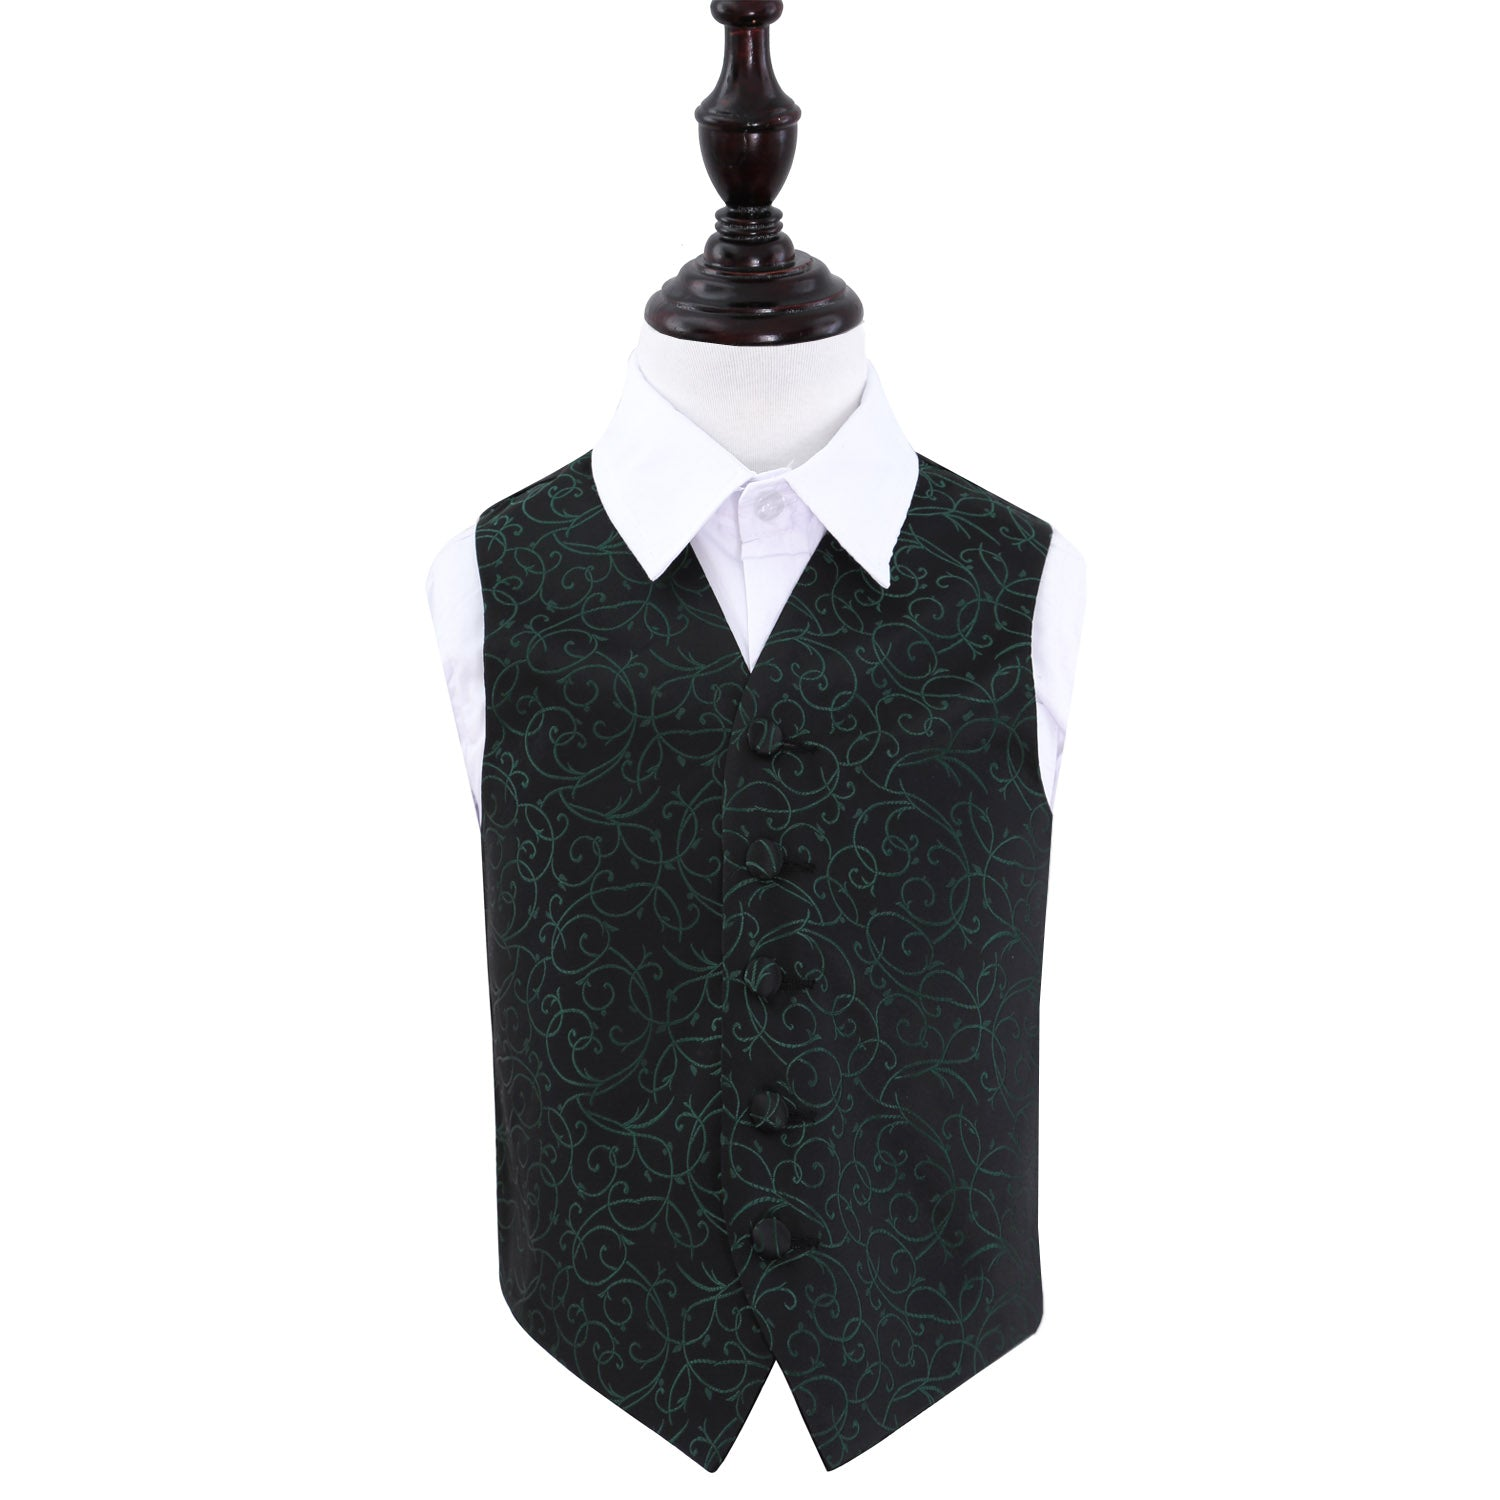 Swirl Waistcoat - Boys - Black & Green, 32', Clothing by Low Cost Gifts